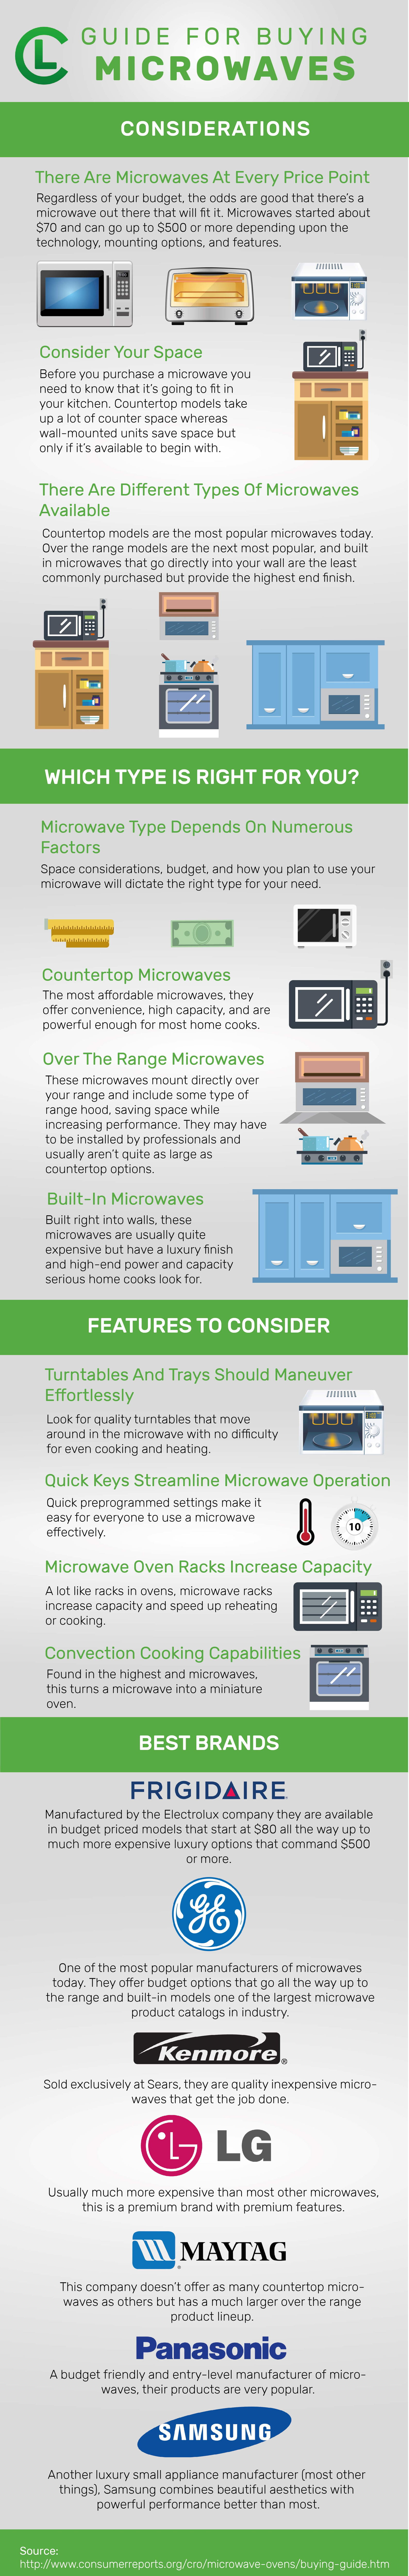 Guide For Buying Microwaves Infographic